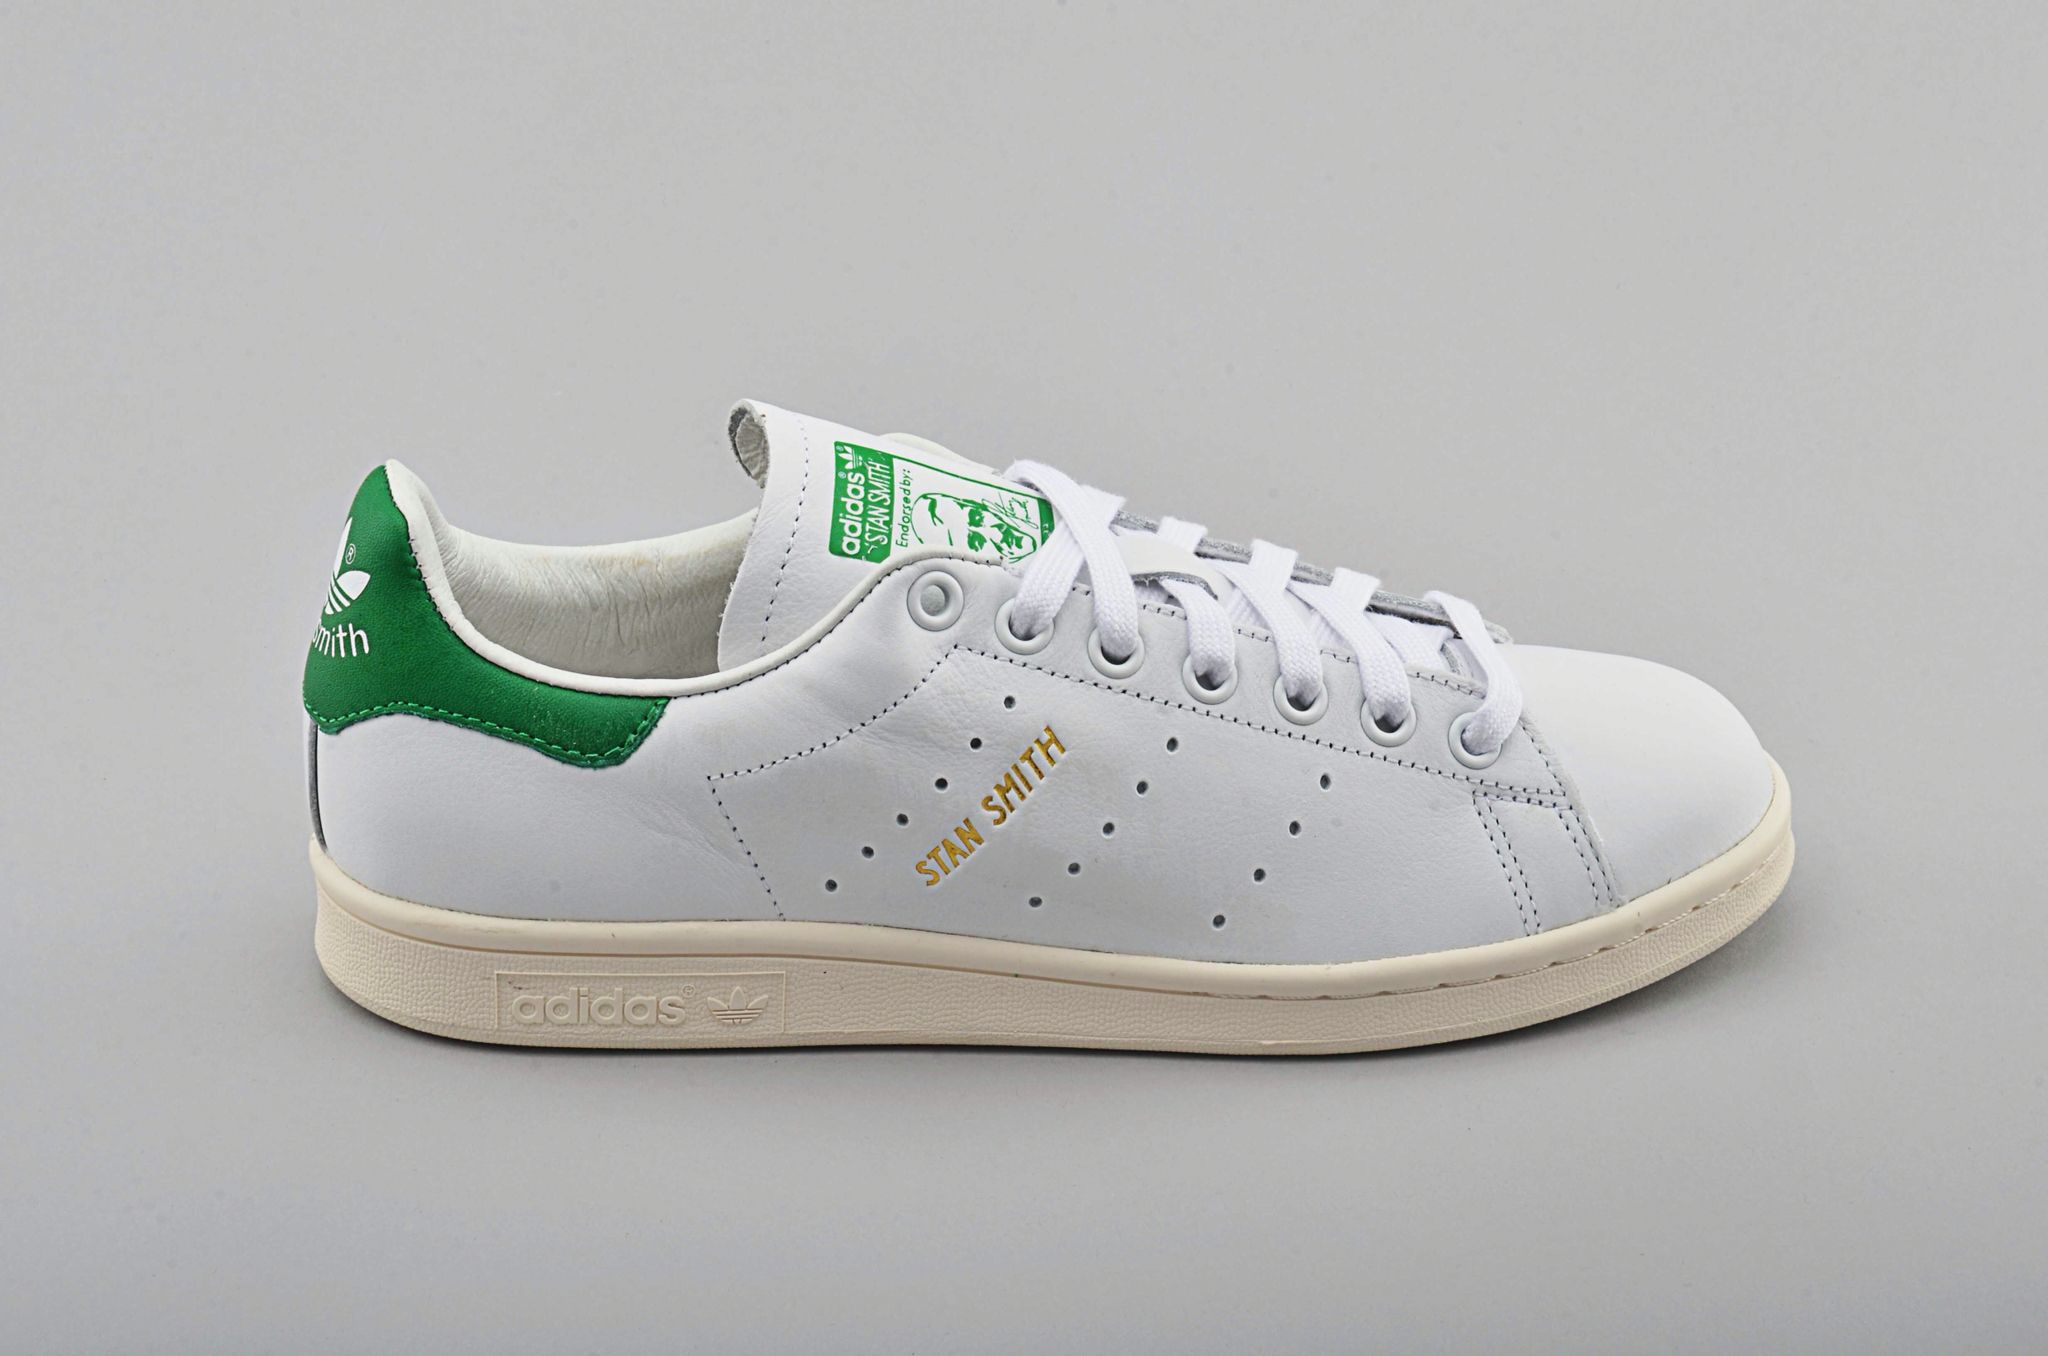 adidas stan smith womens tennis shoes adidas v2 receipt